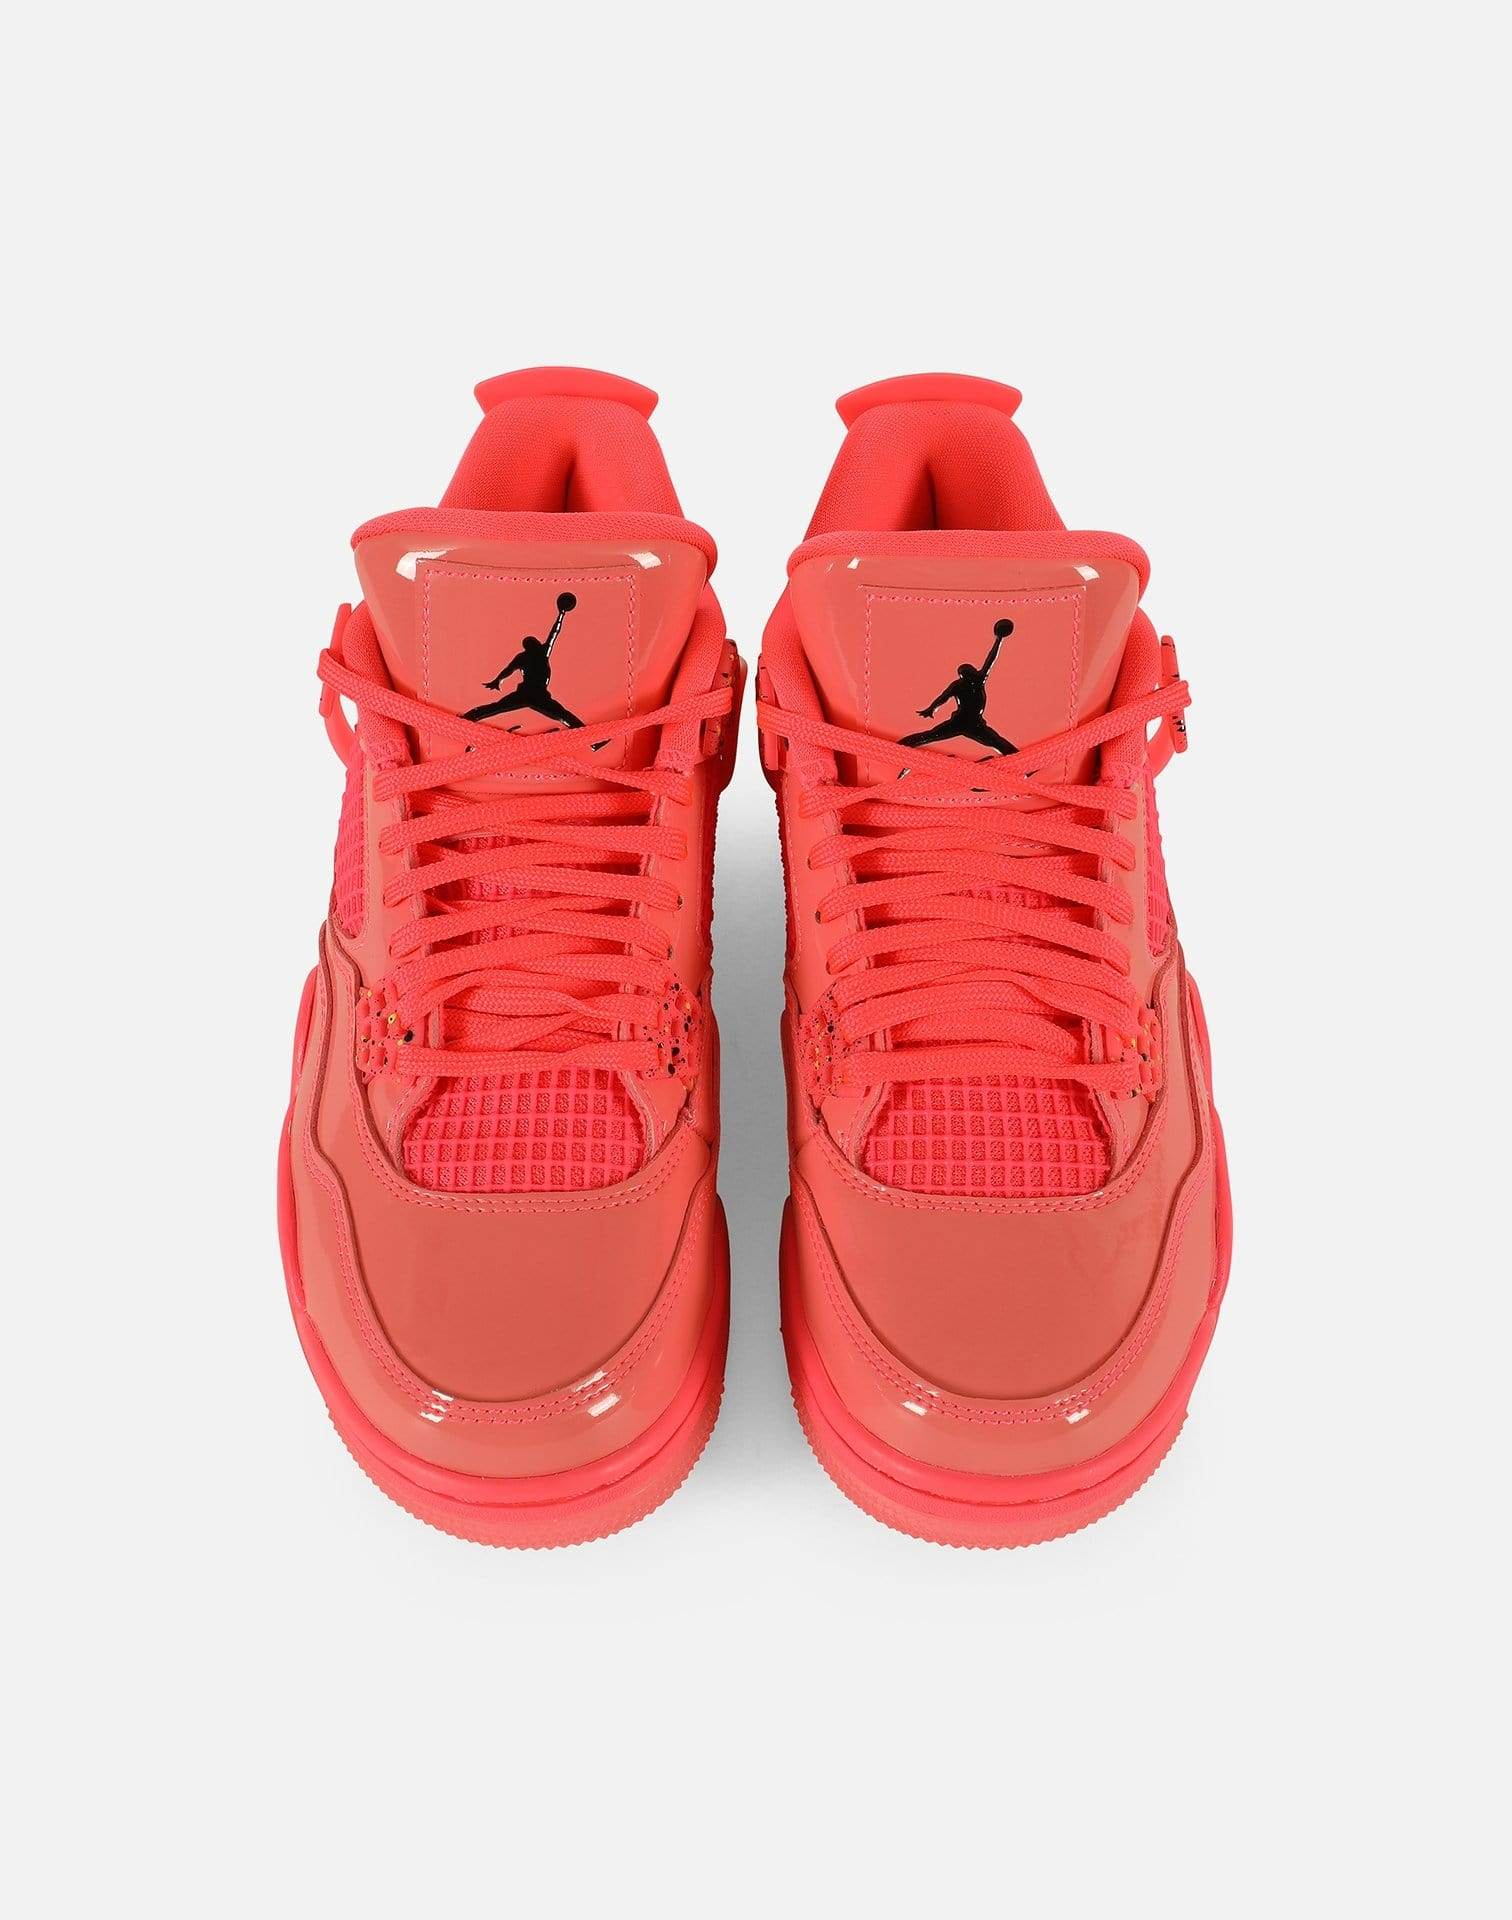 Jordan Women's Air Jordan Retro 4 NRG